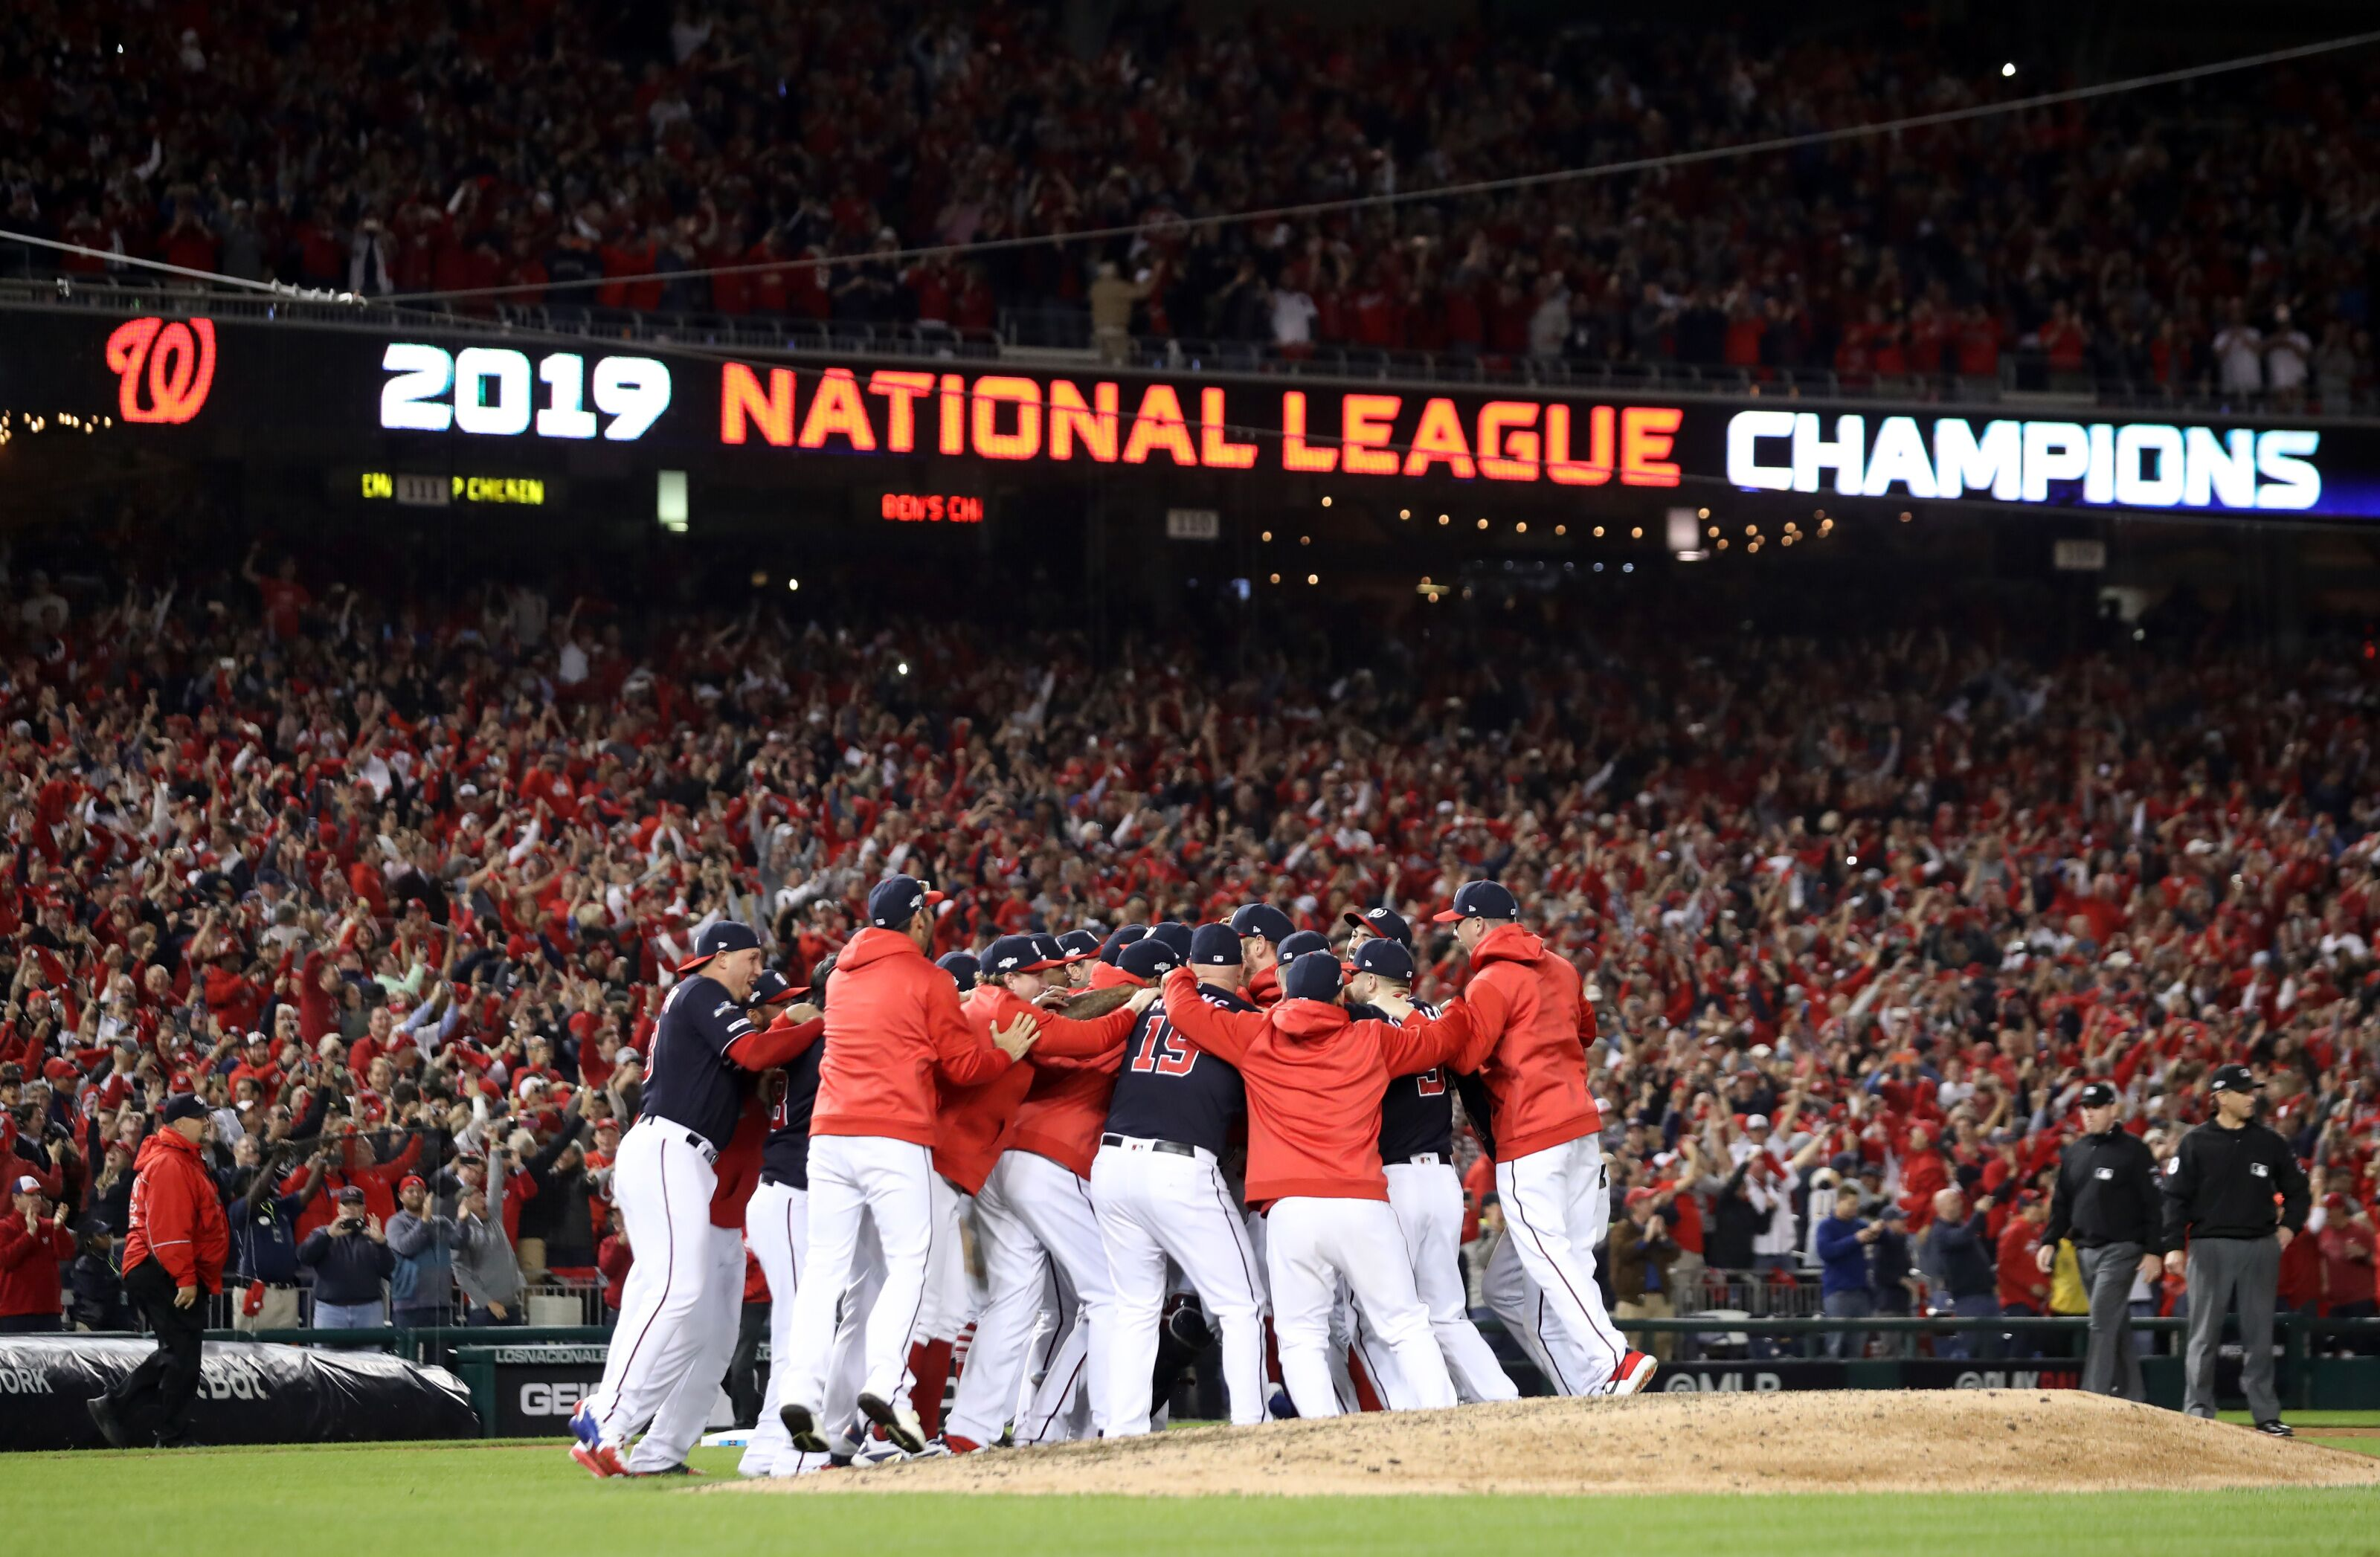 Holy crap, the Nationals are actually going to do this (maybe)